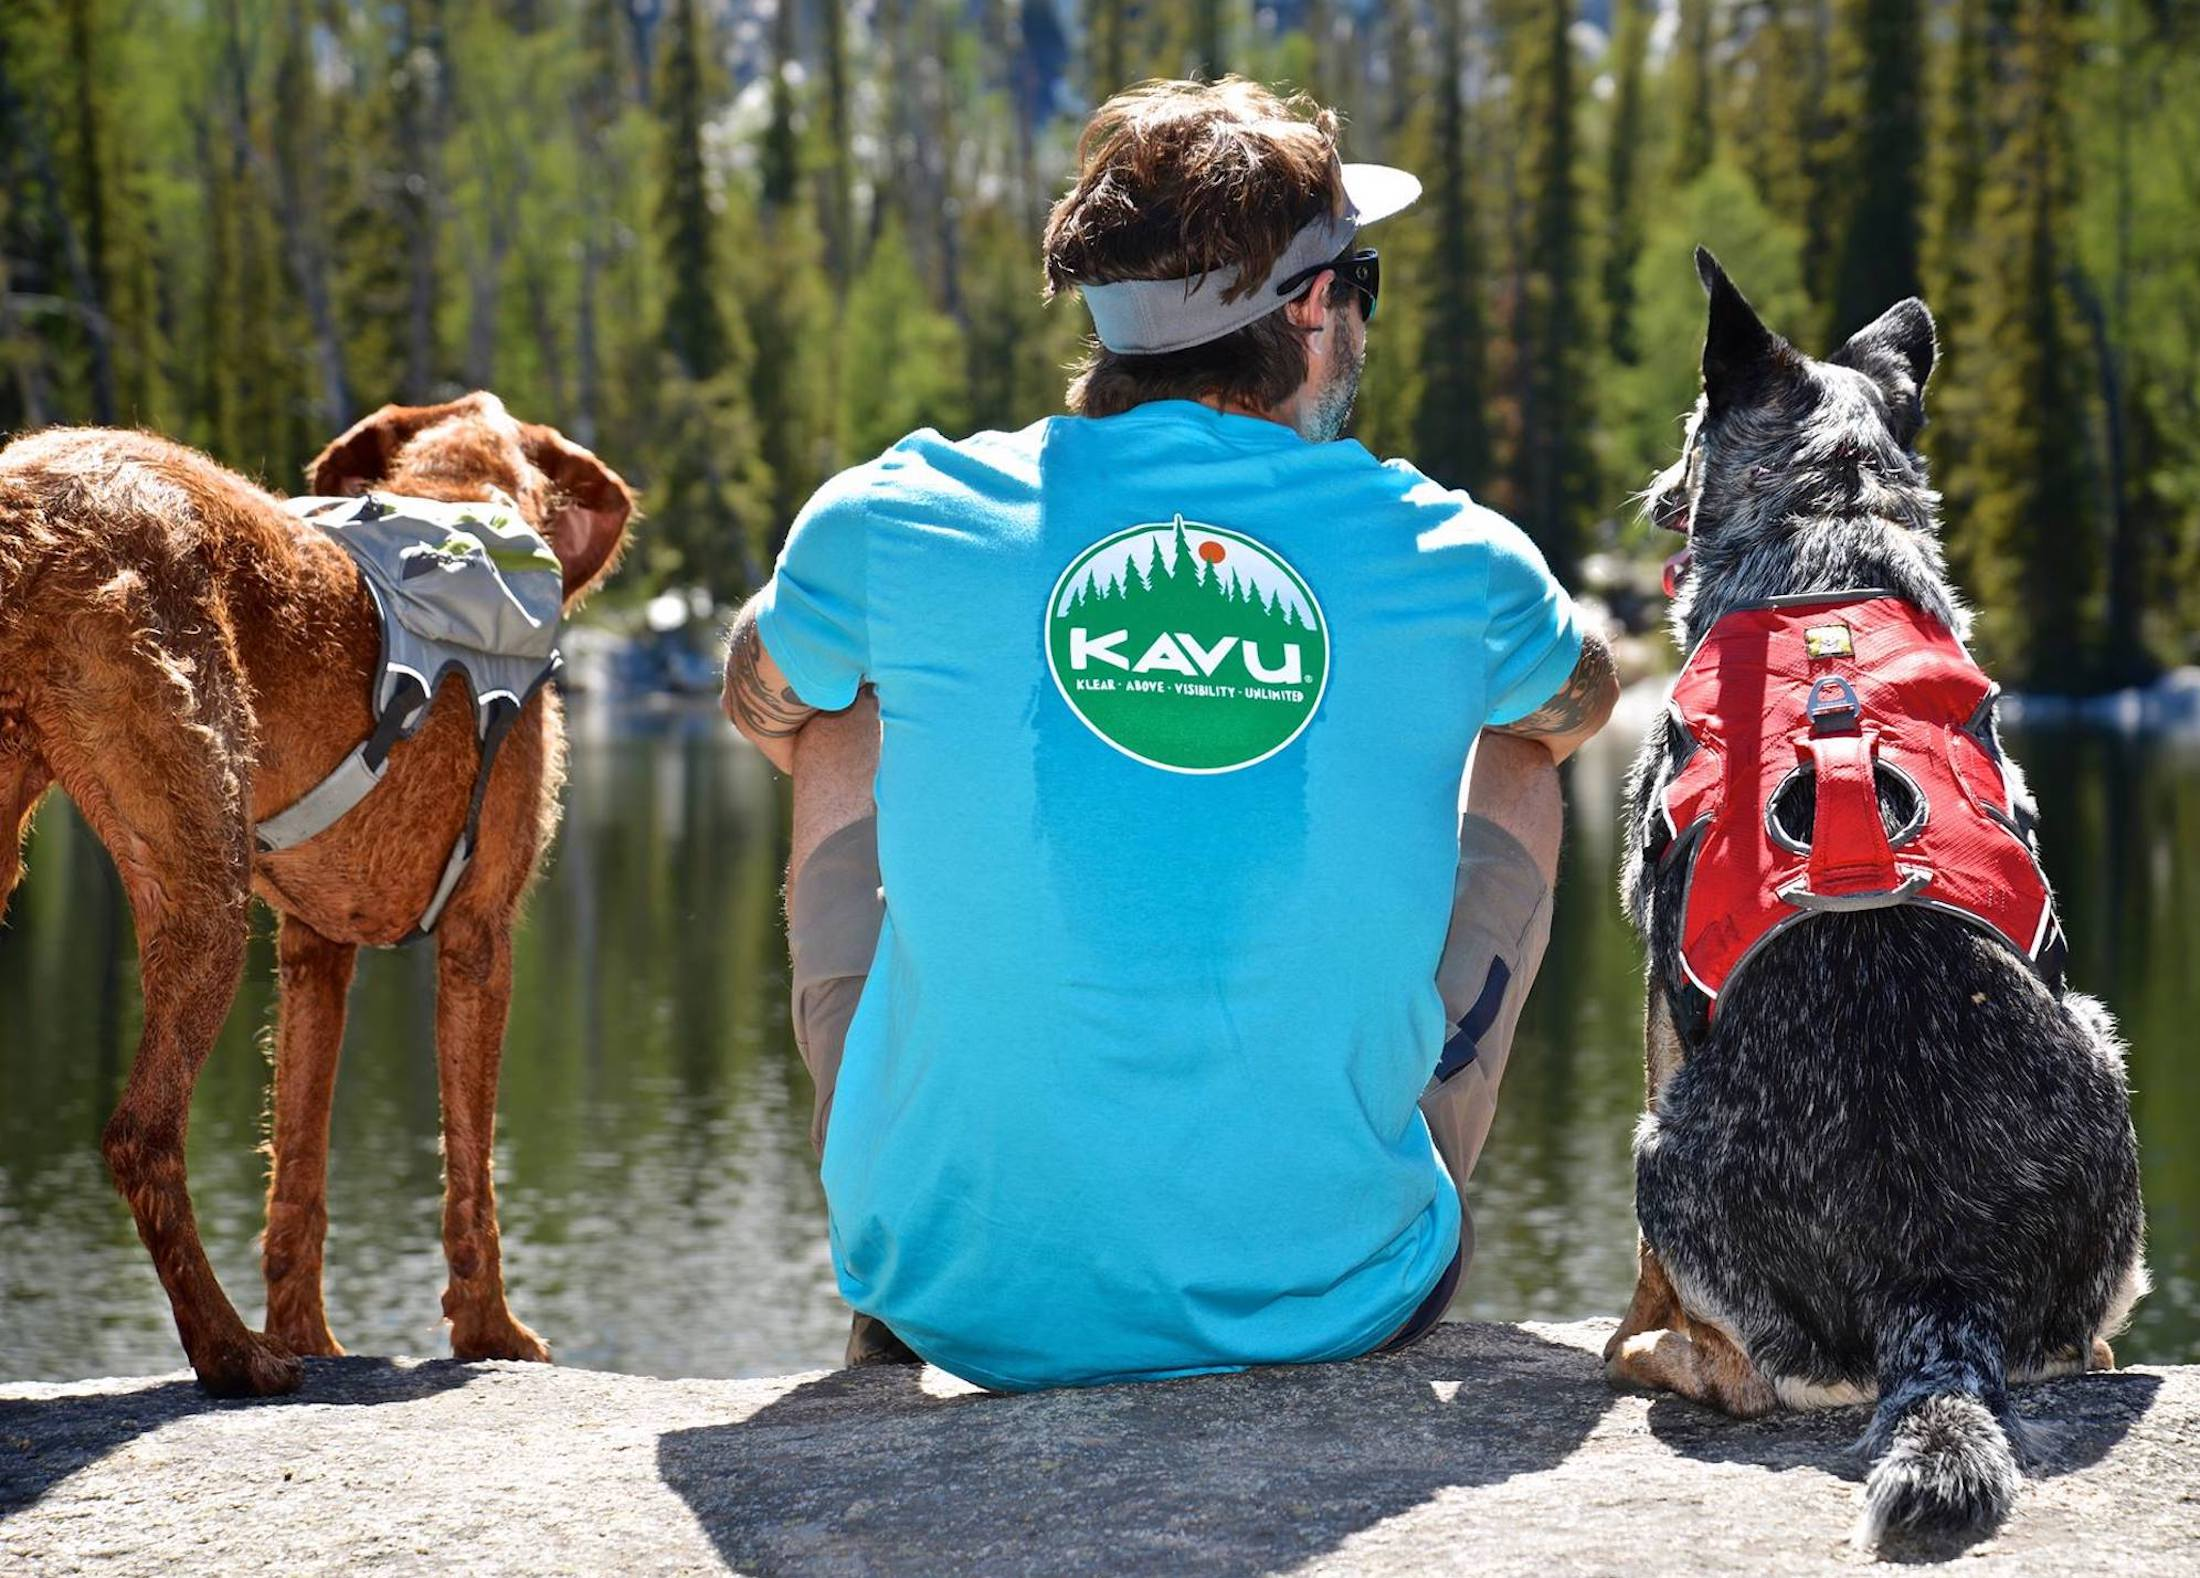 KAVU brand with dogs